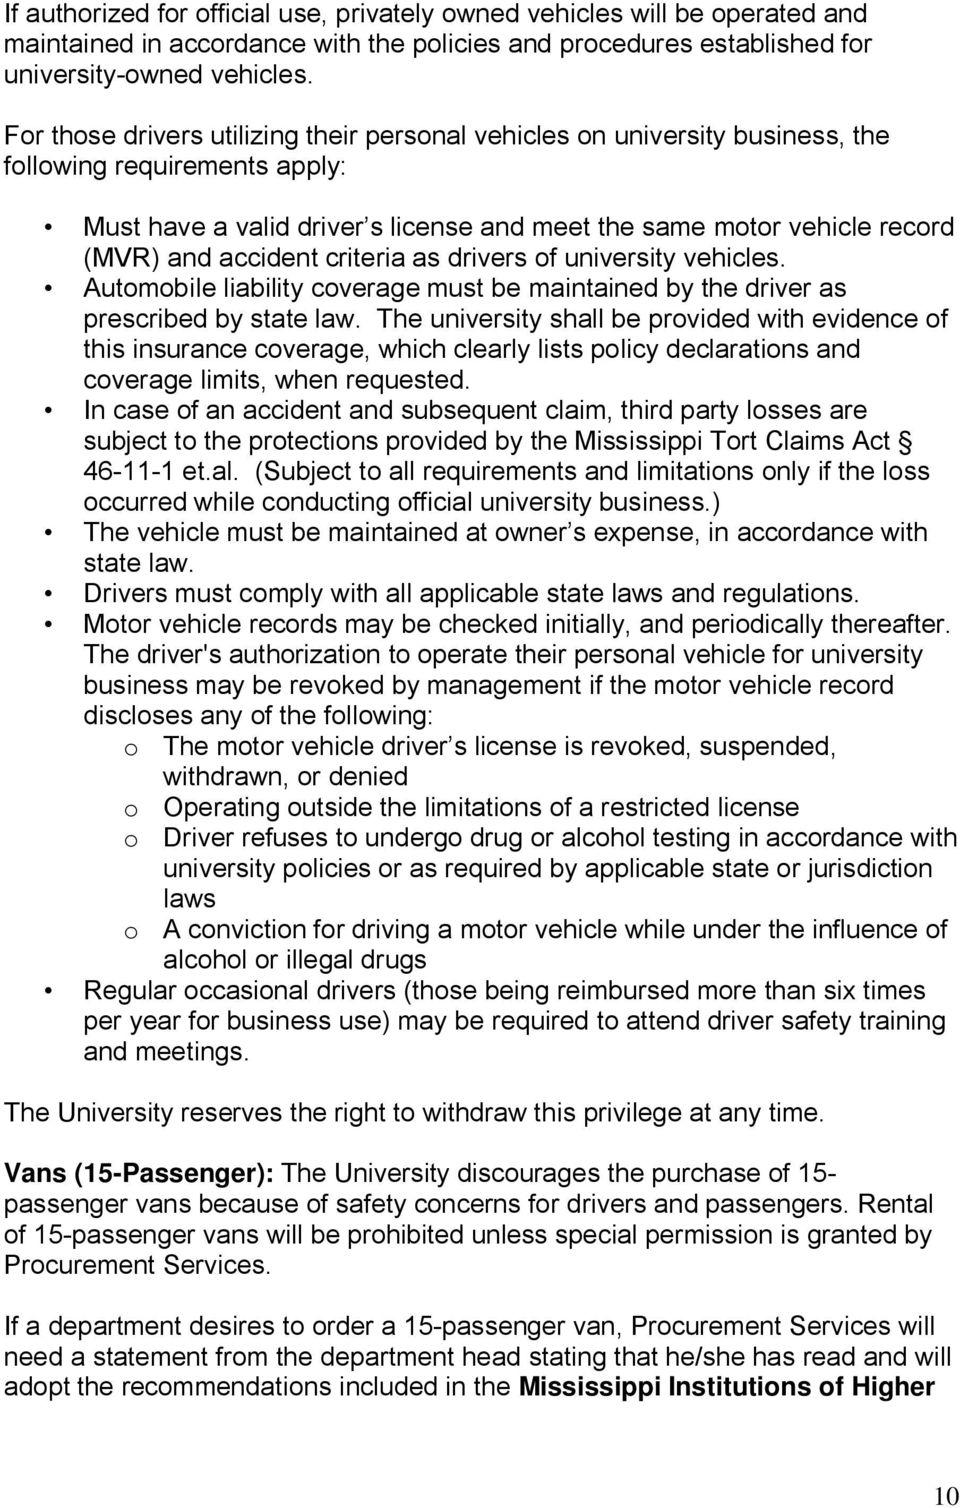 accident criteria as drivers of university vehicles. Automobile liability coverage must be maintained by the driver as prescribed by state law.